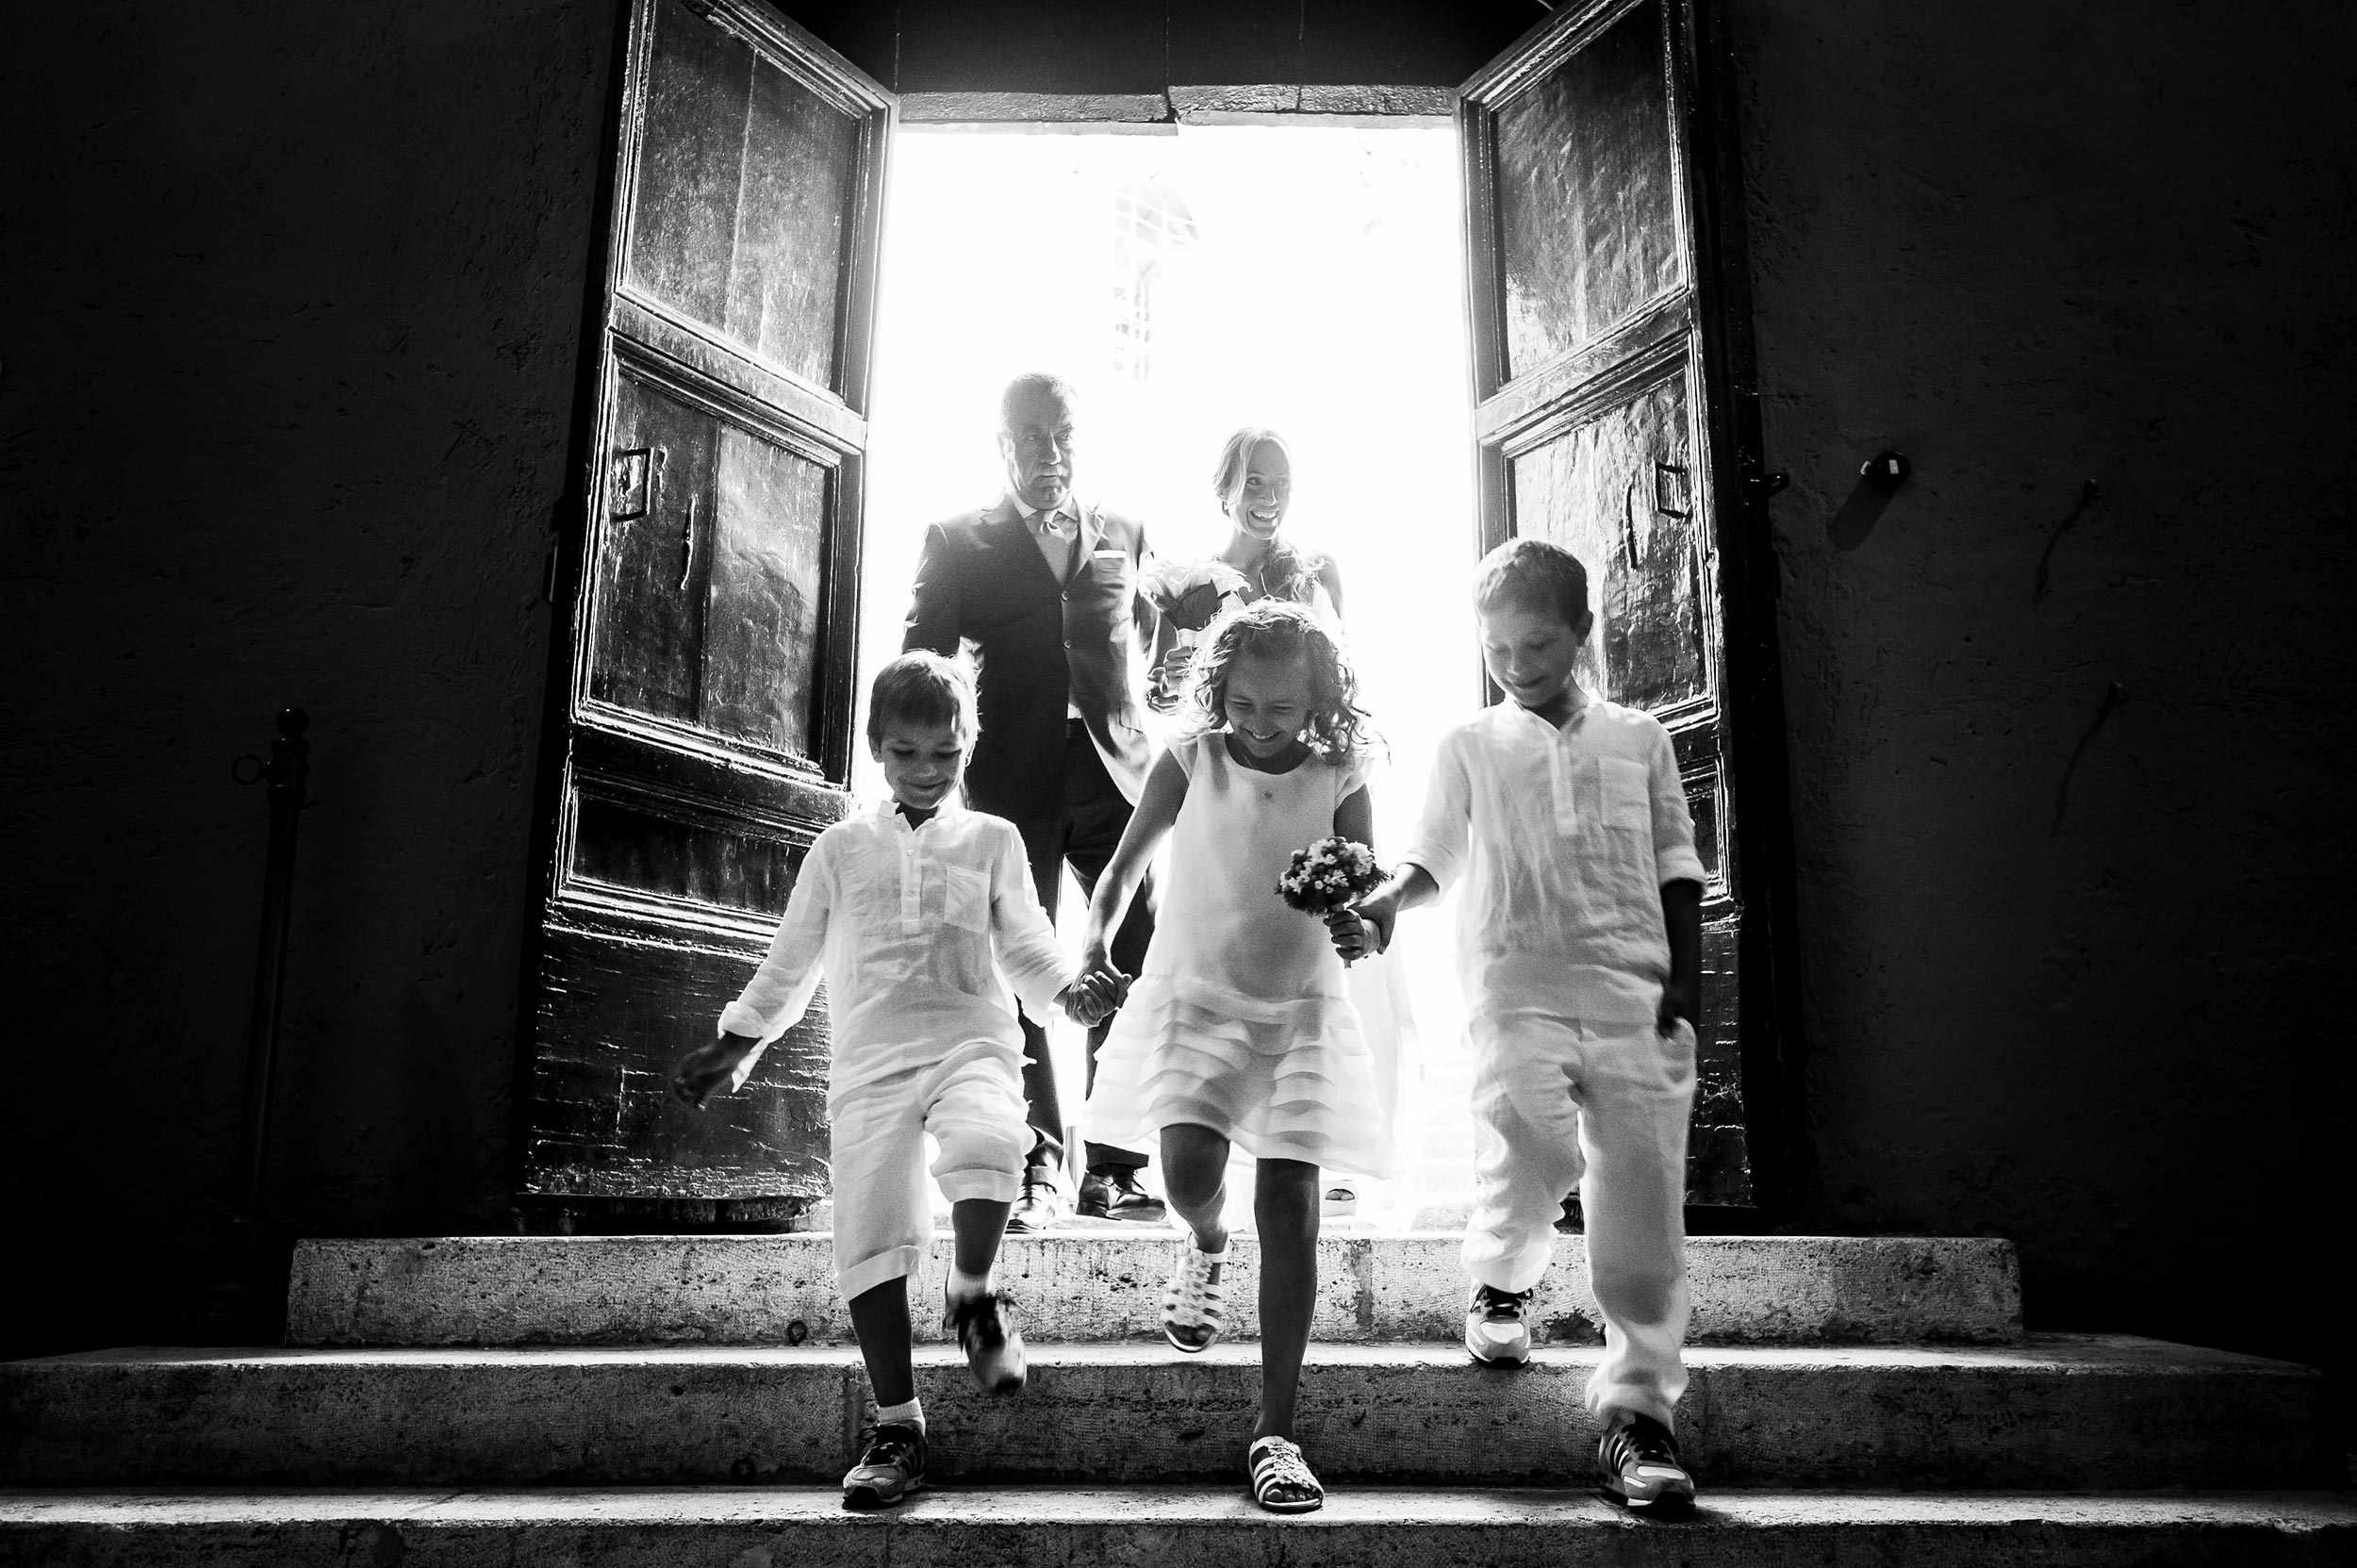 bride-and-dad-enter-church-with-three-kids-down-the-steps-vatica-city-rome-black-and-white-wedding-photography.jpg